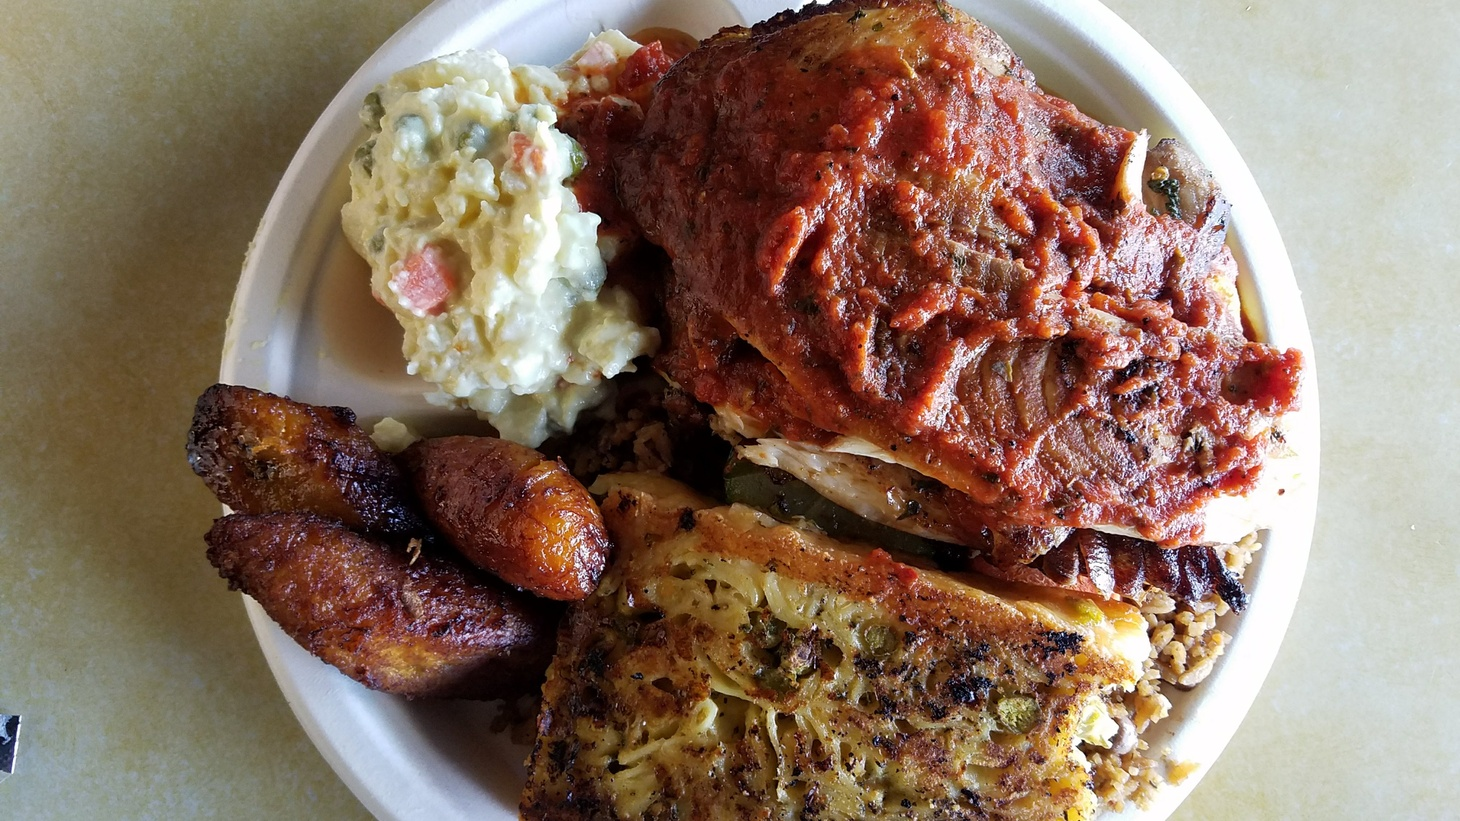 The blackened fish platter is Mona Holmes' favorite dish from Simply Wholesome.